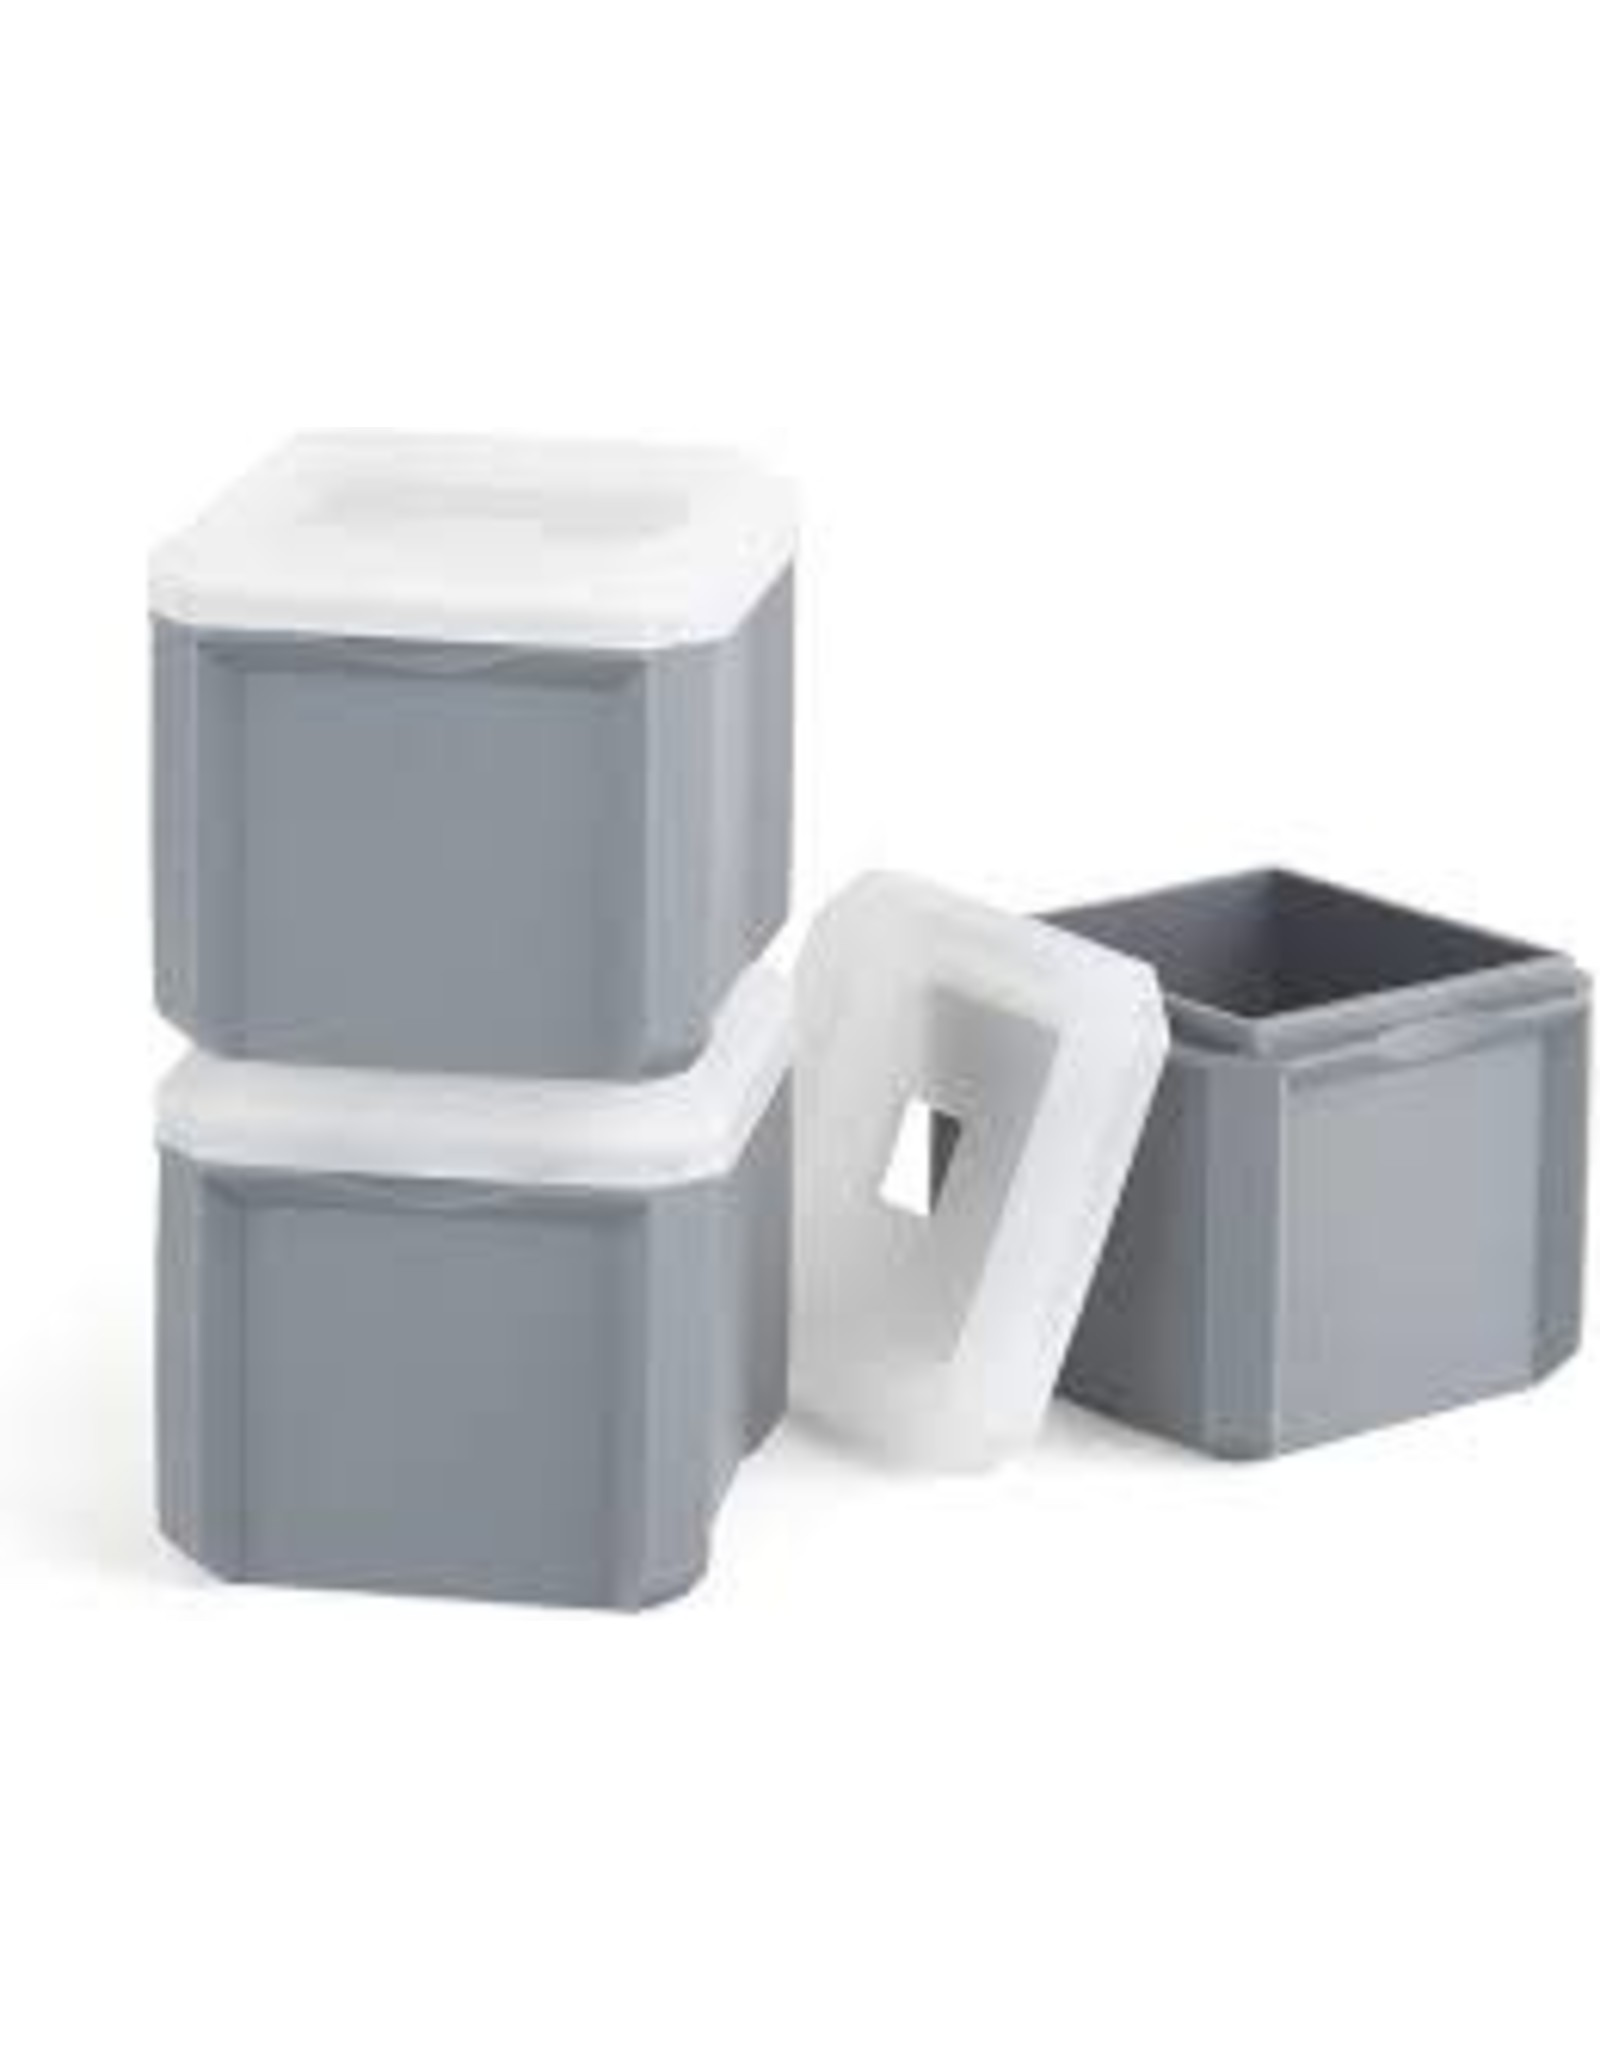 Final Touch - Stackable Extra-Large Ice Moulds x3